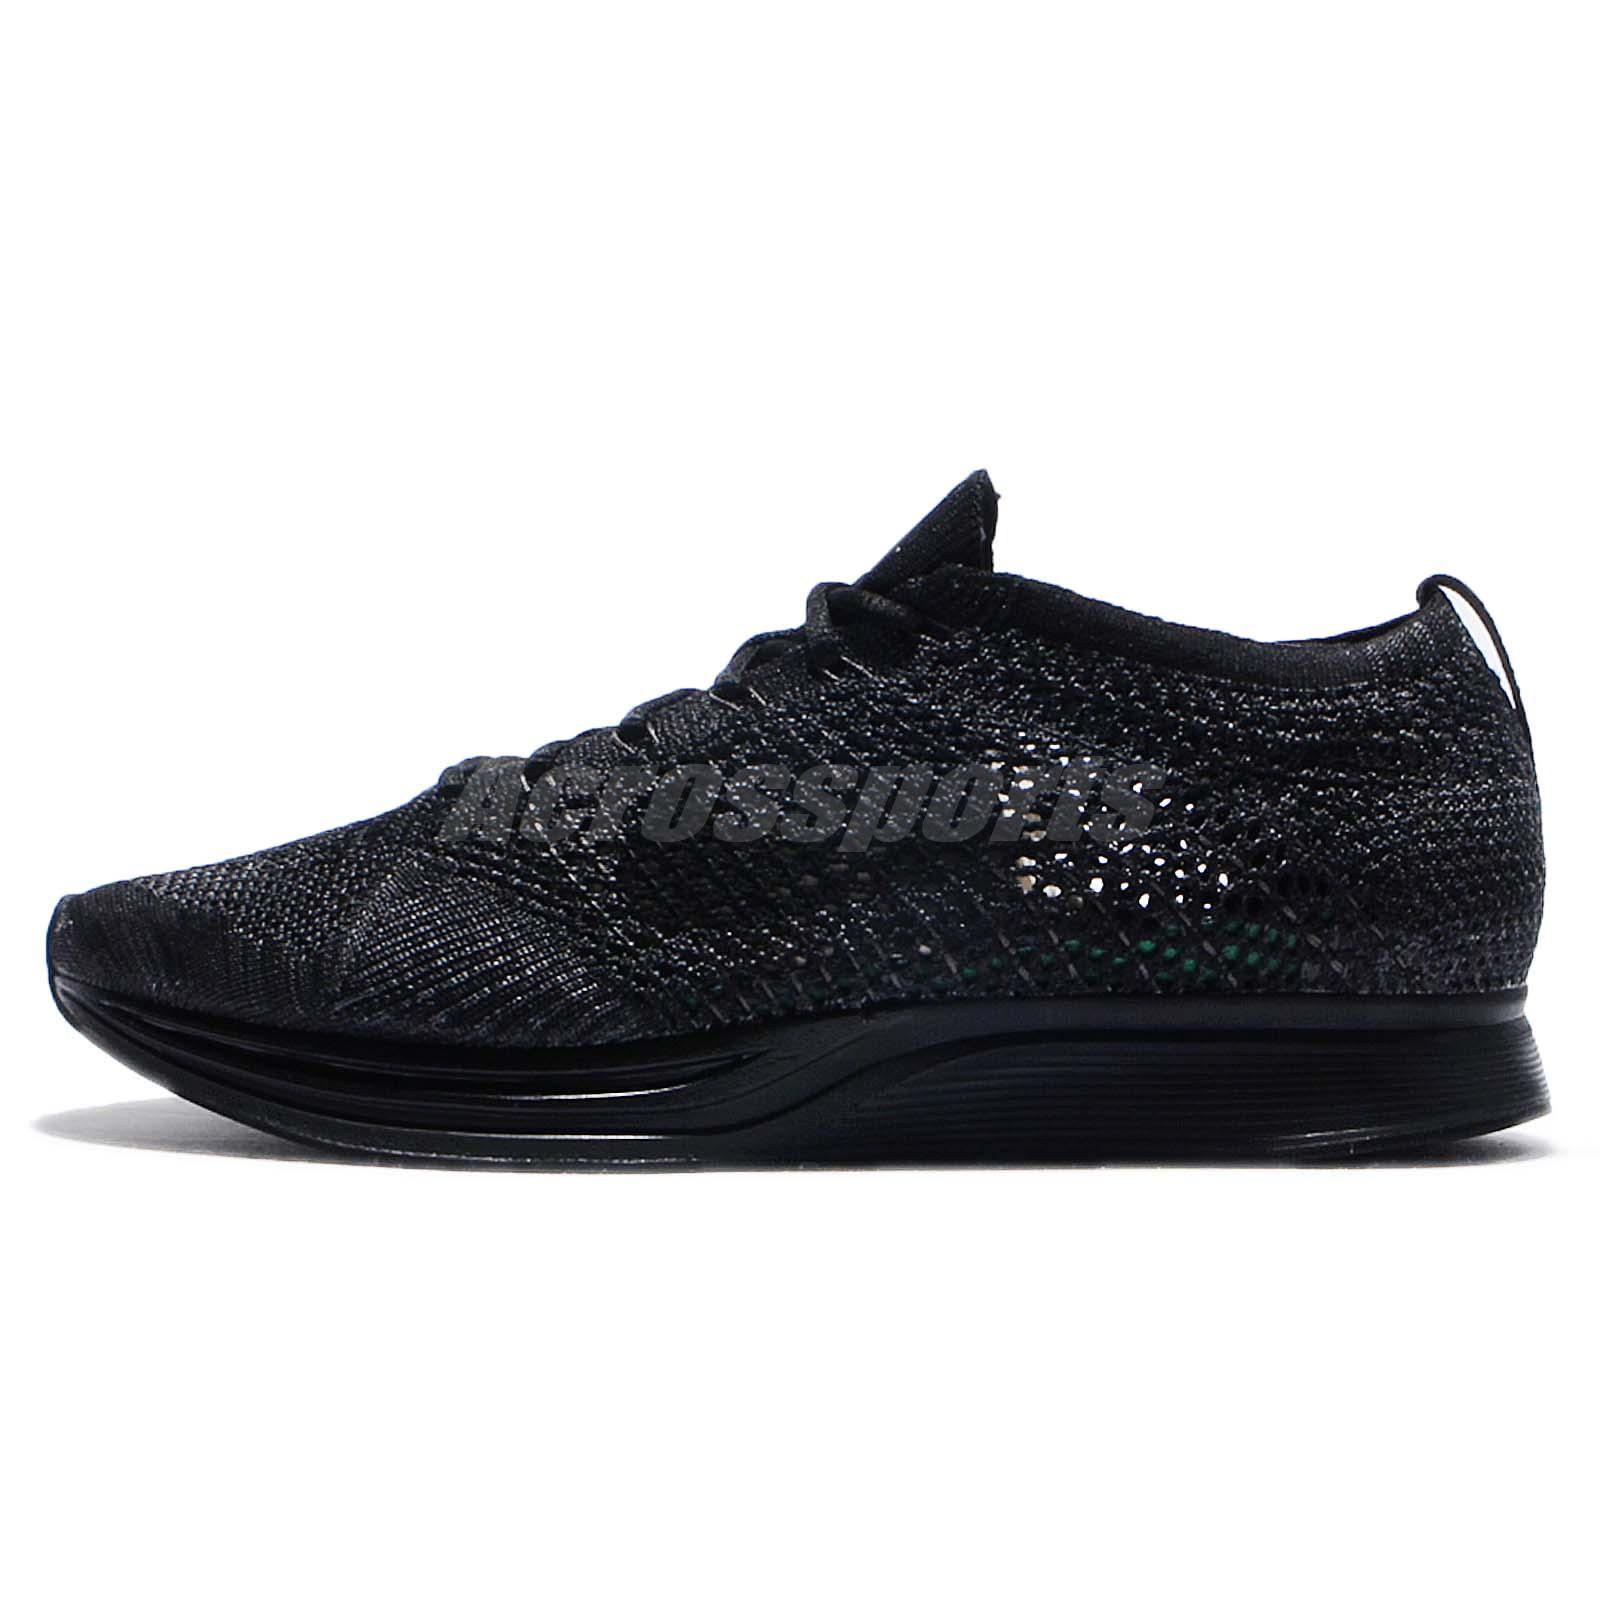 quality design 9186a 7ccf0 ... discount code for nike flyknit racer triple black men running casual  shoes sneakers 526628 009 03e2d